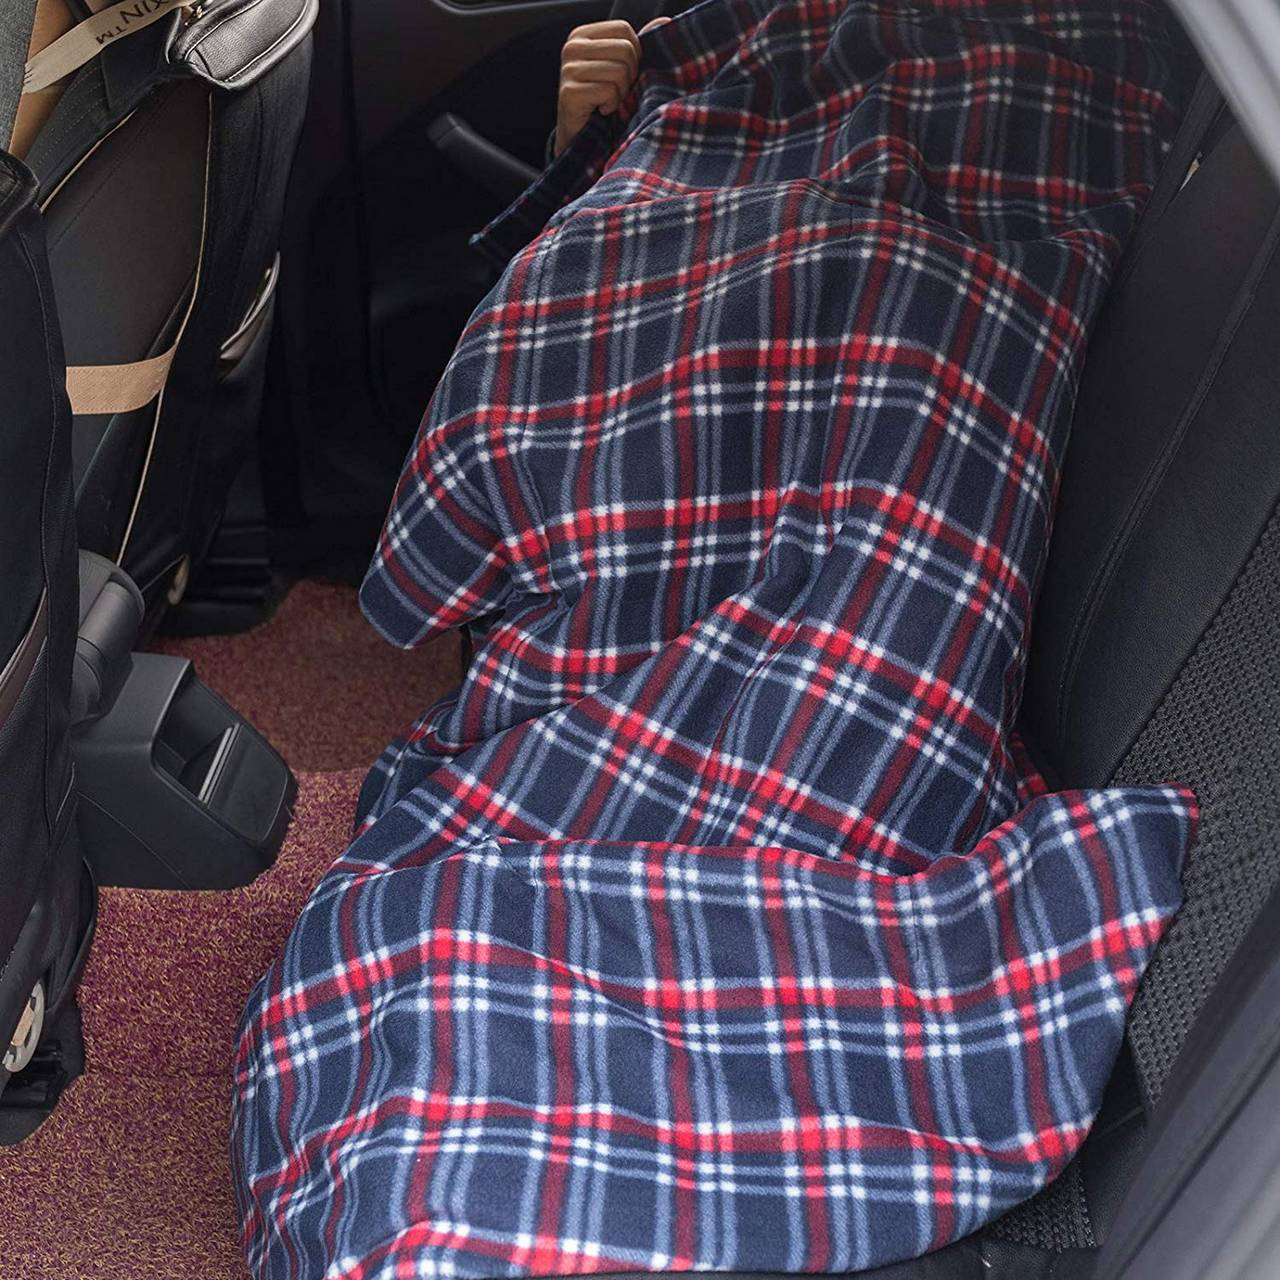 Seat Heating Car Electric Blanket With 2 Heating Levels